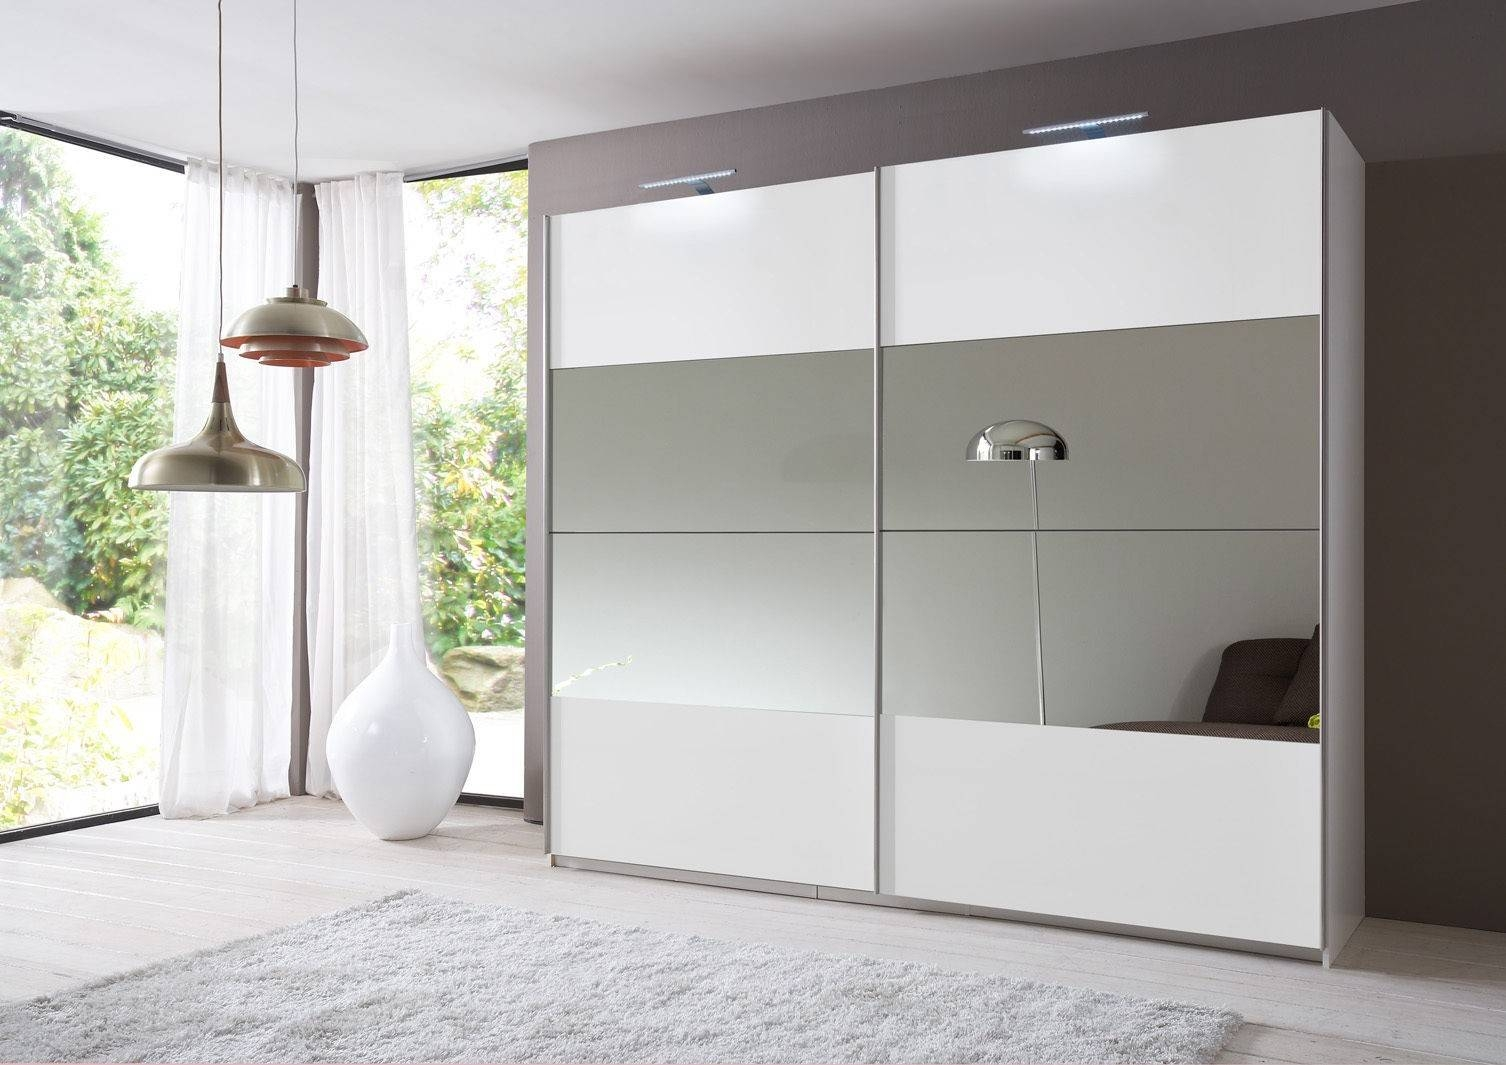 Slumberhaus 'eleganz' German Made Modern White & Mirror Sliding within White Mirrored Wardrobes (Image 10 of 15)